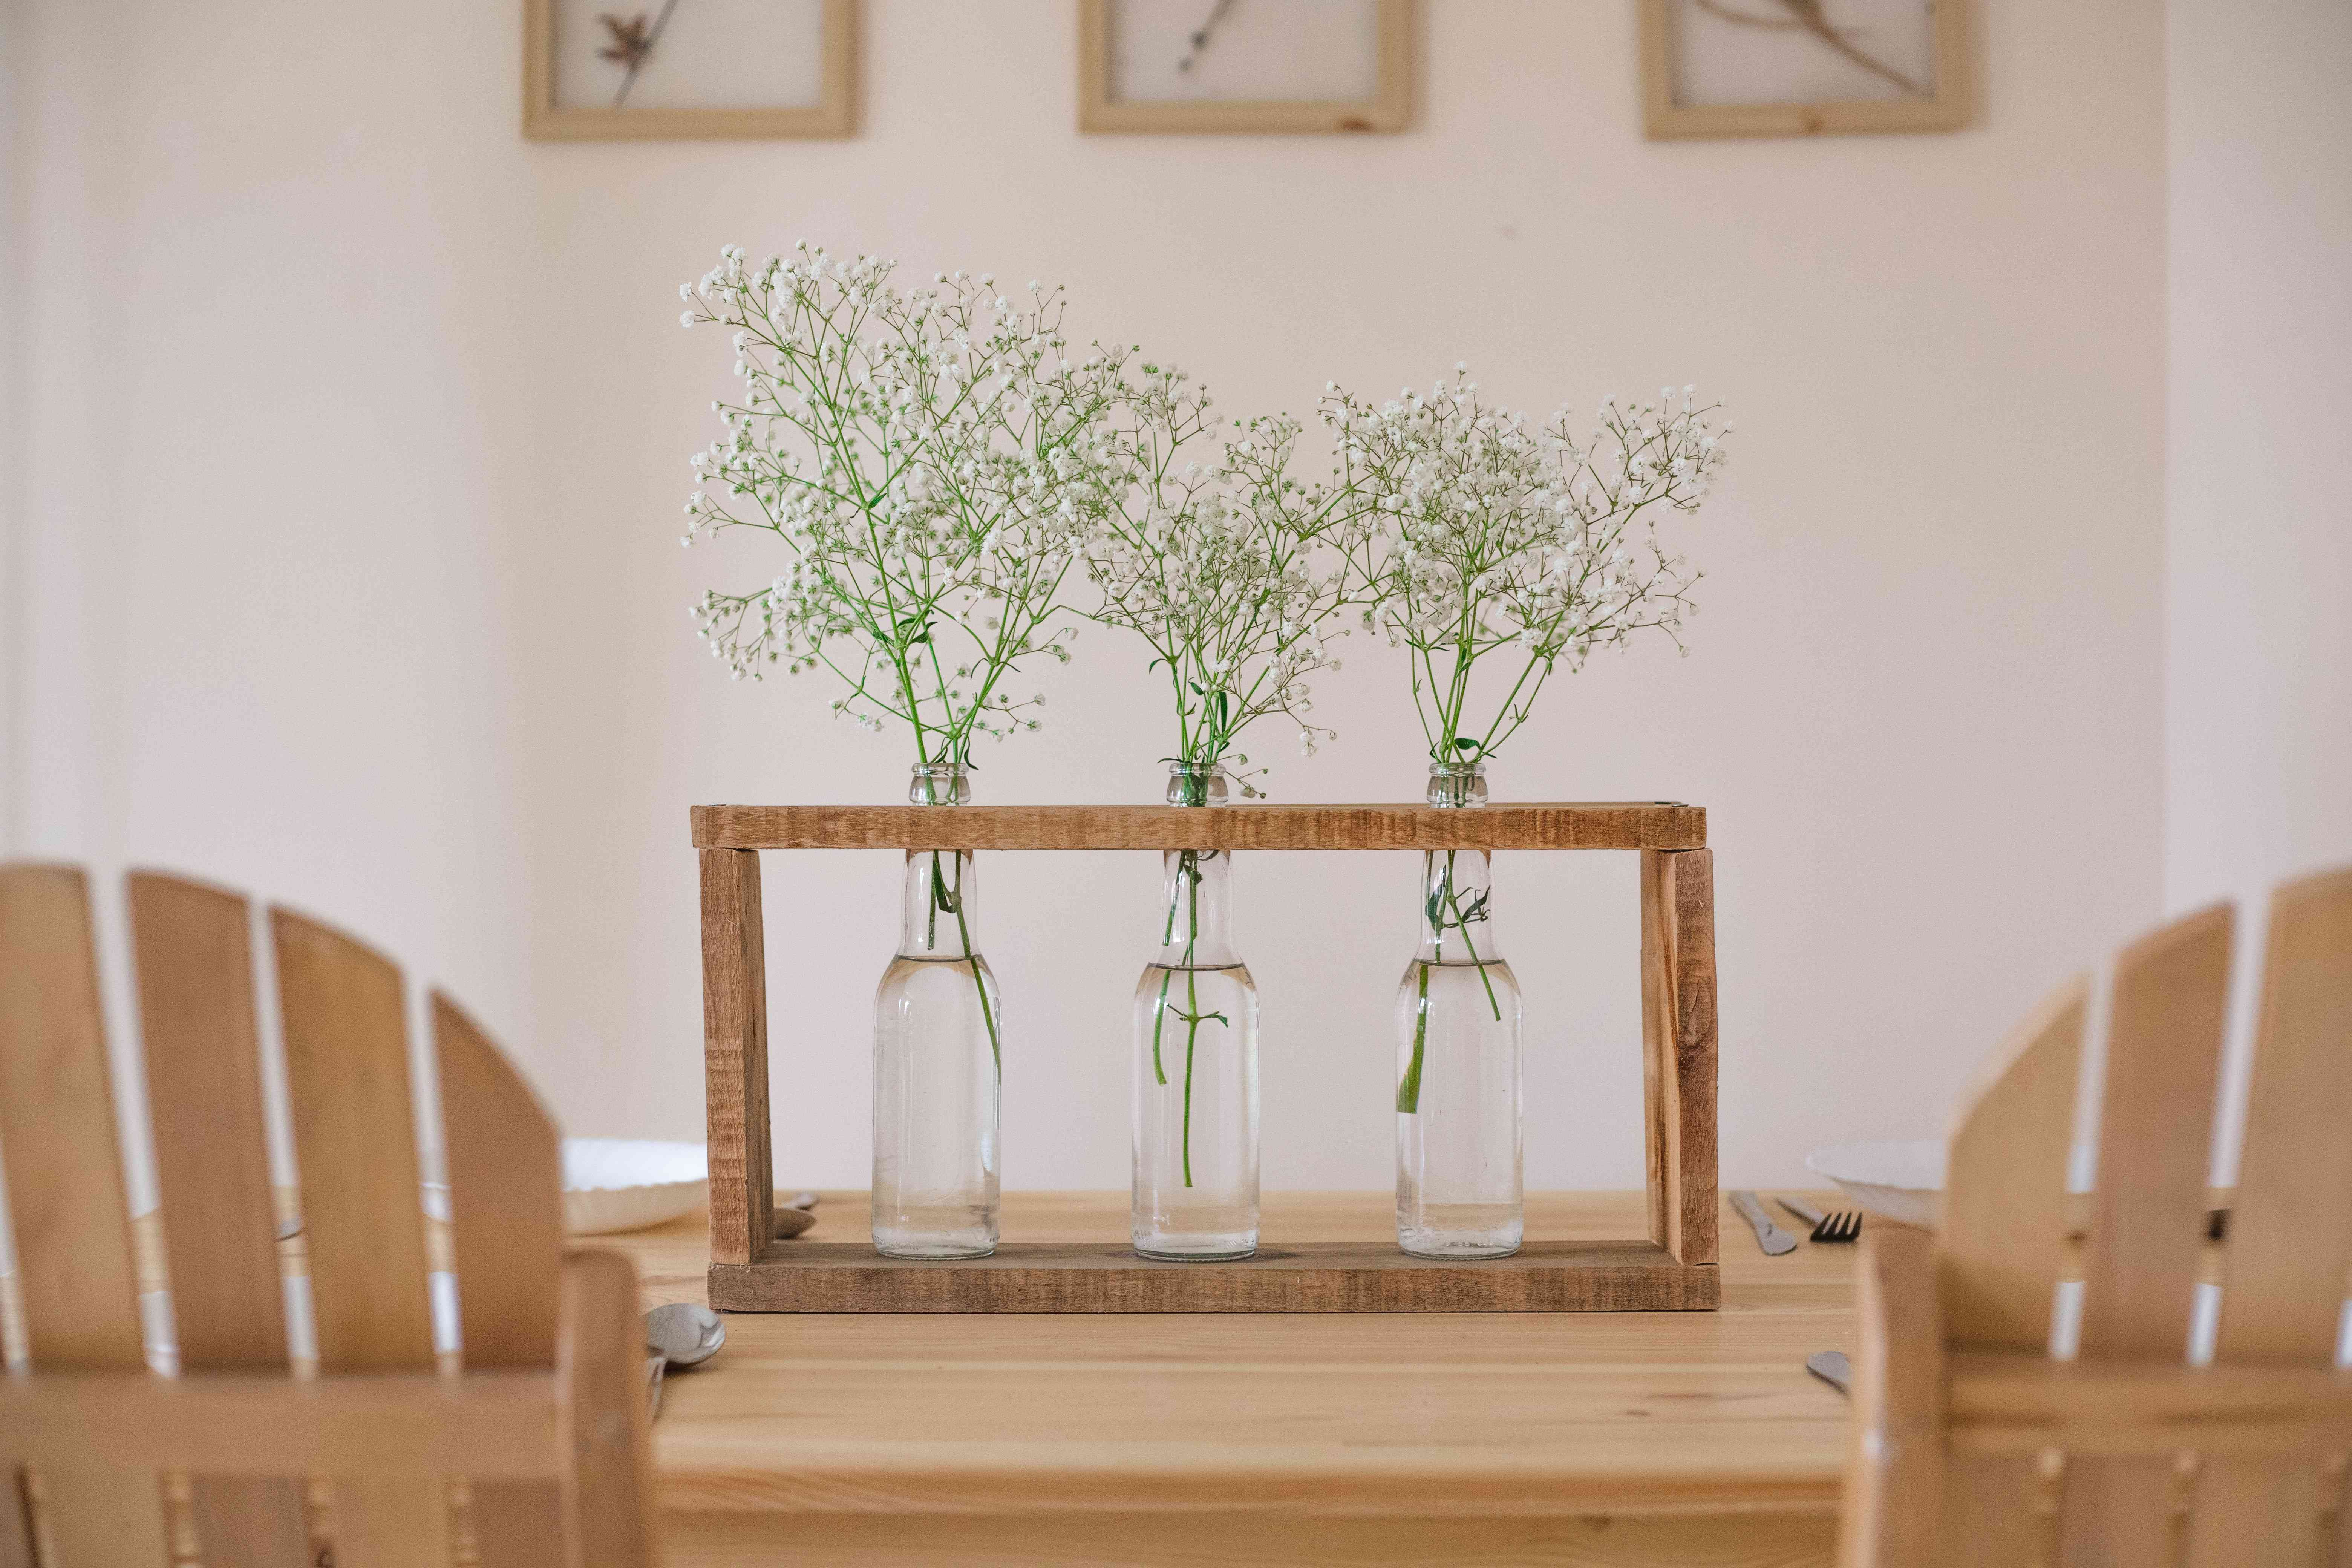 upcycled glass bottles as modern wood vase centerpiece with flowers on wooden table